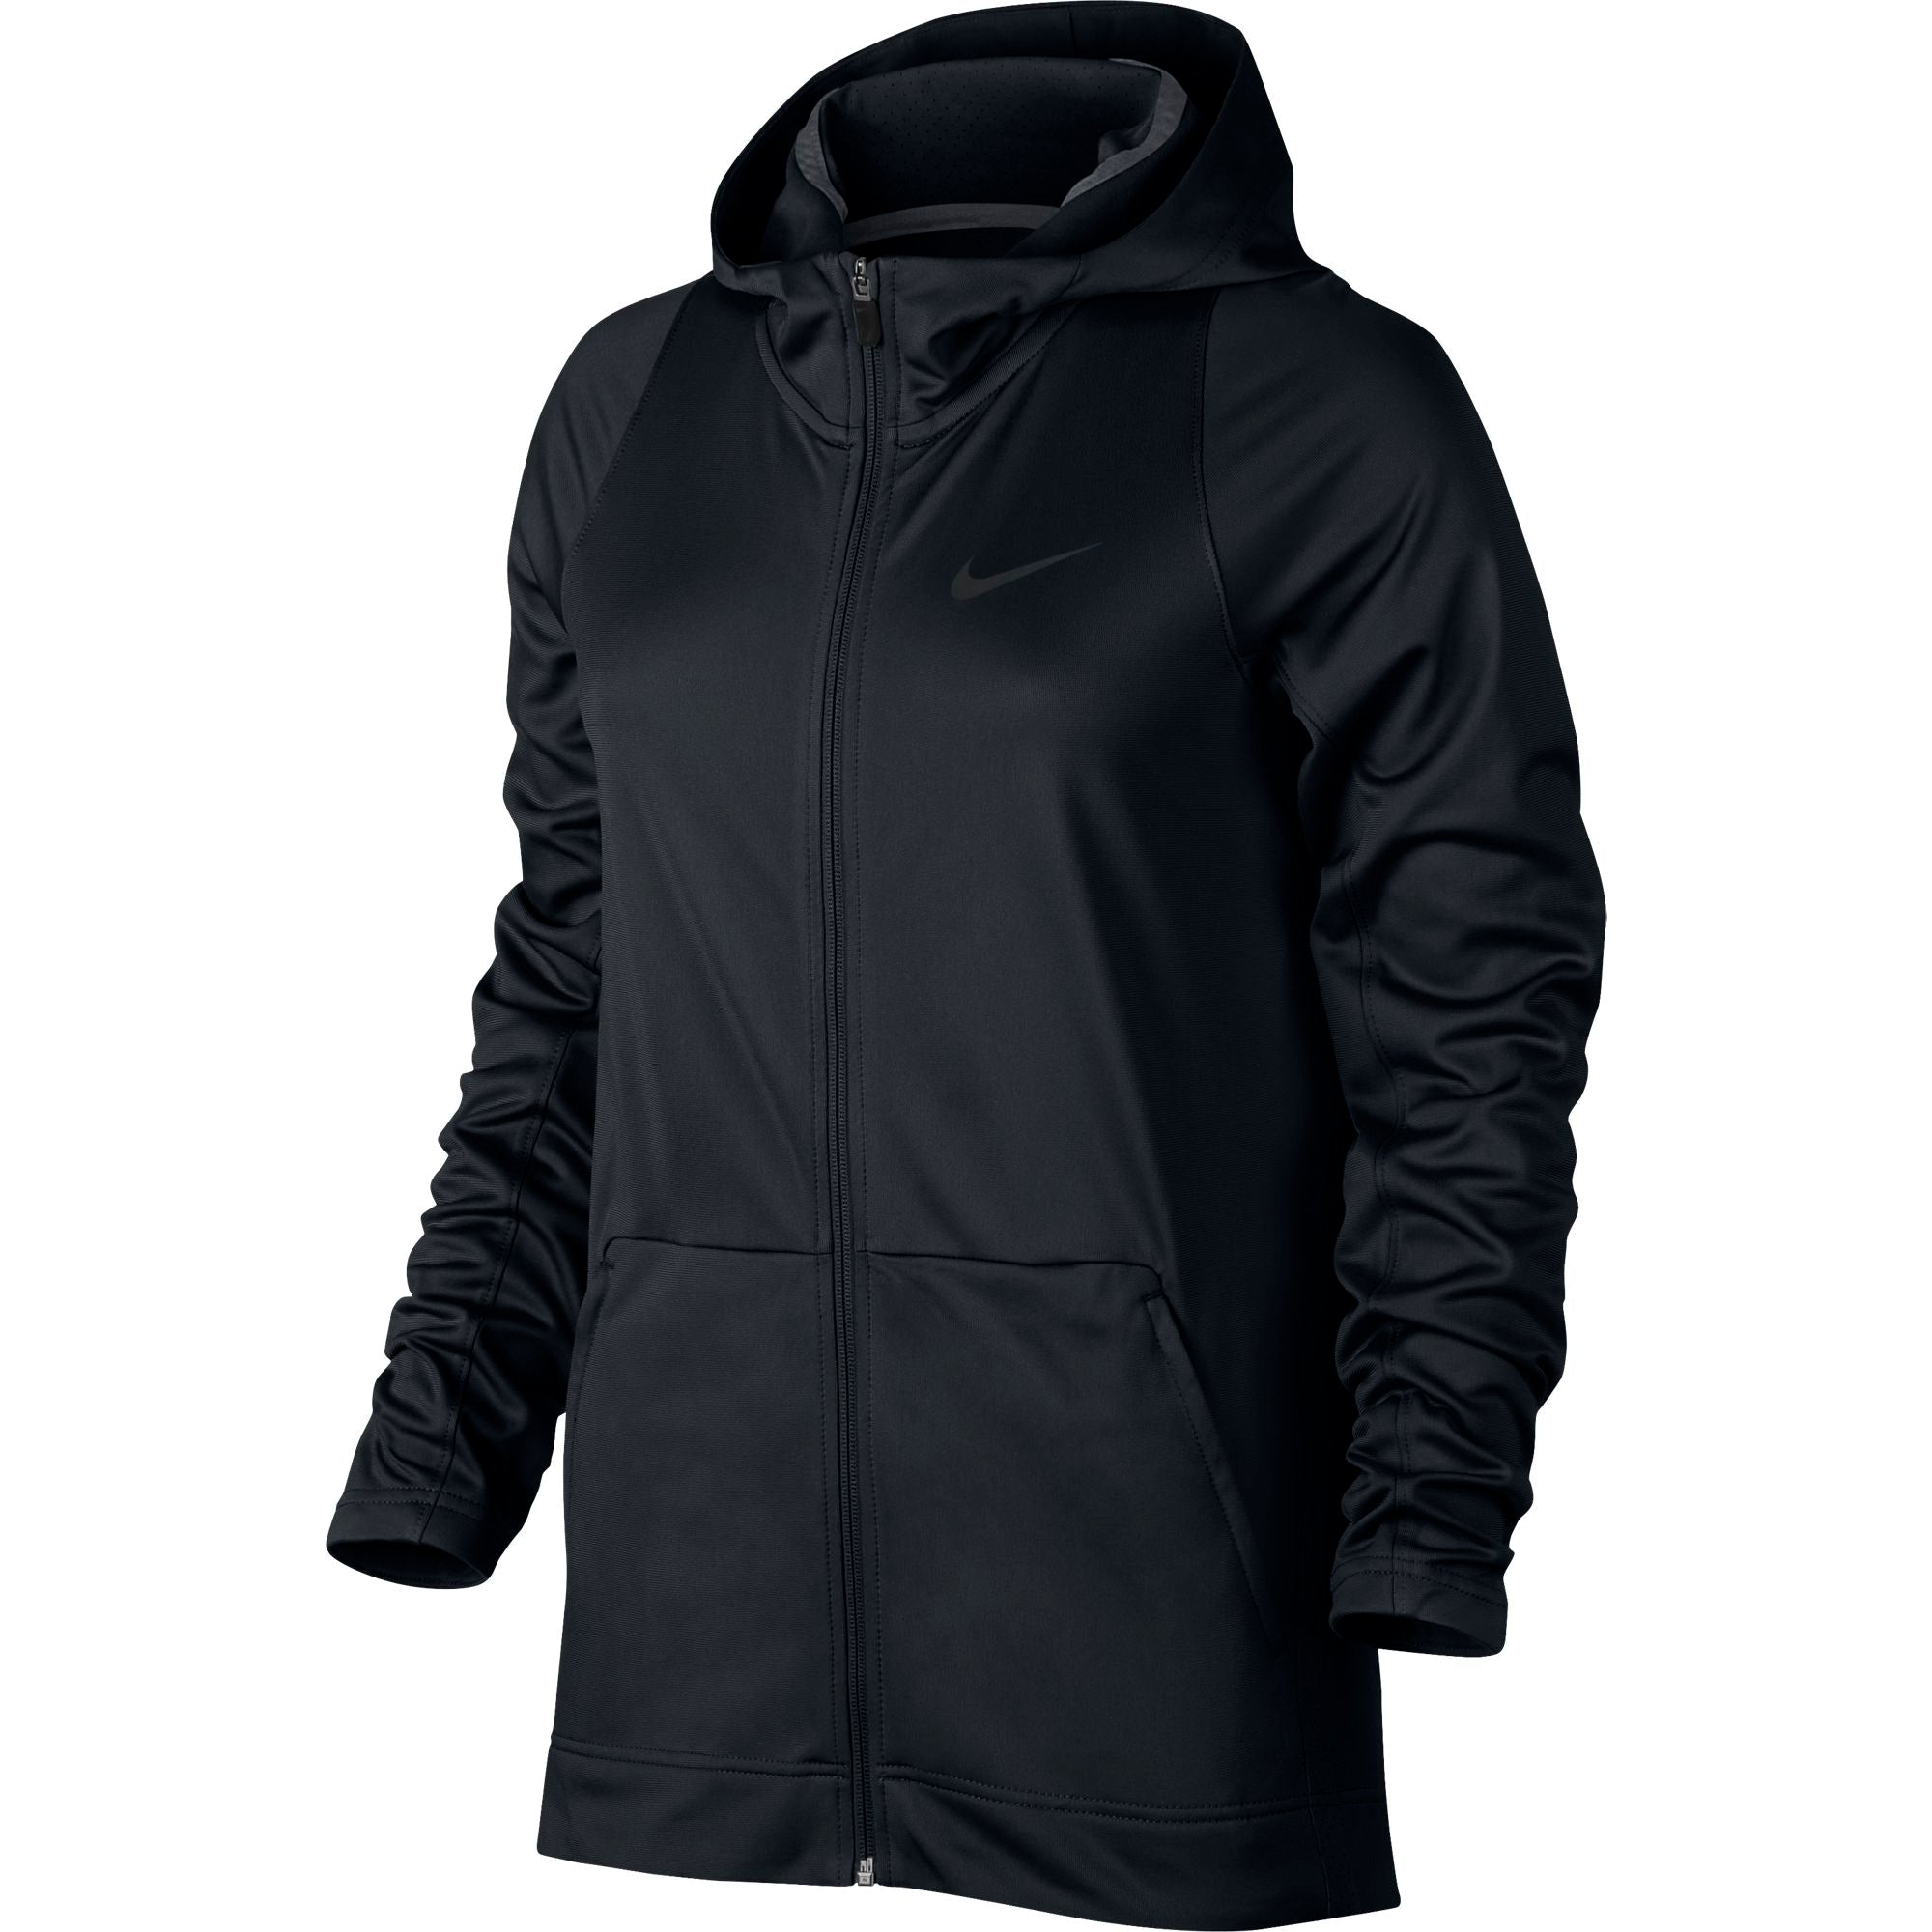 Nike Womens Basketball Hyper Elite Hoodie - NK-813943-010